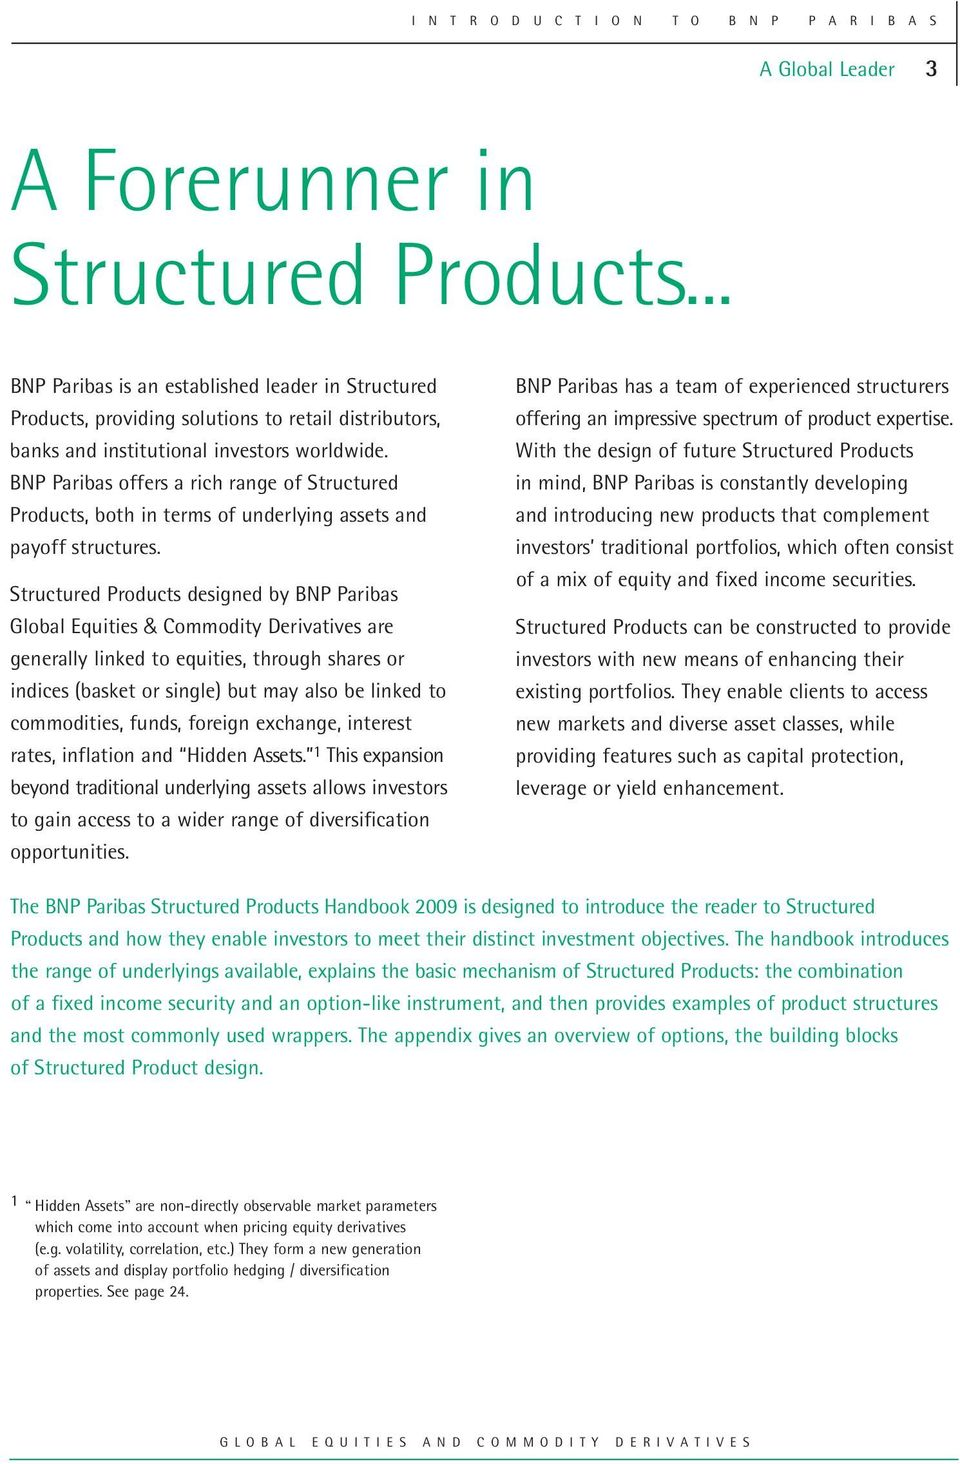 BNP Paribas offers a rich range of Structured Products, both in terms of underlying assets and payoff structures.